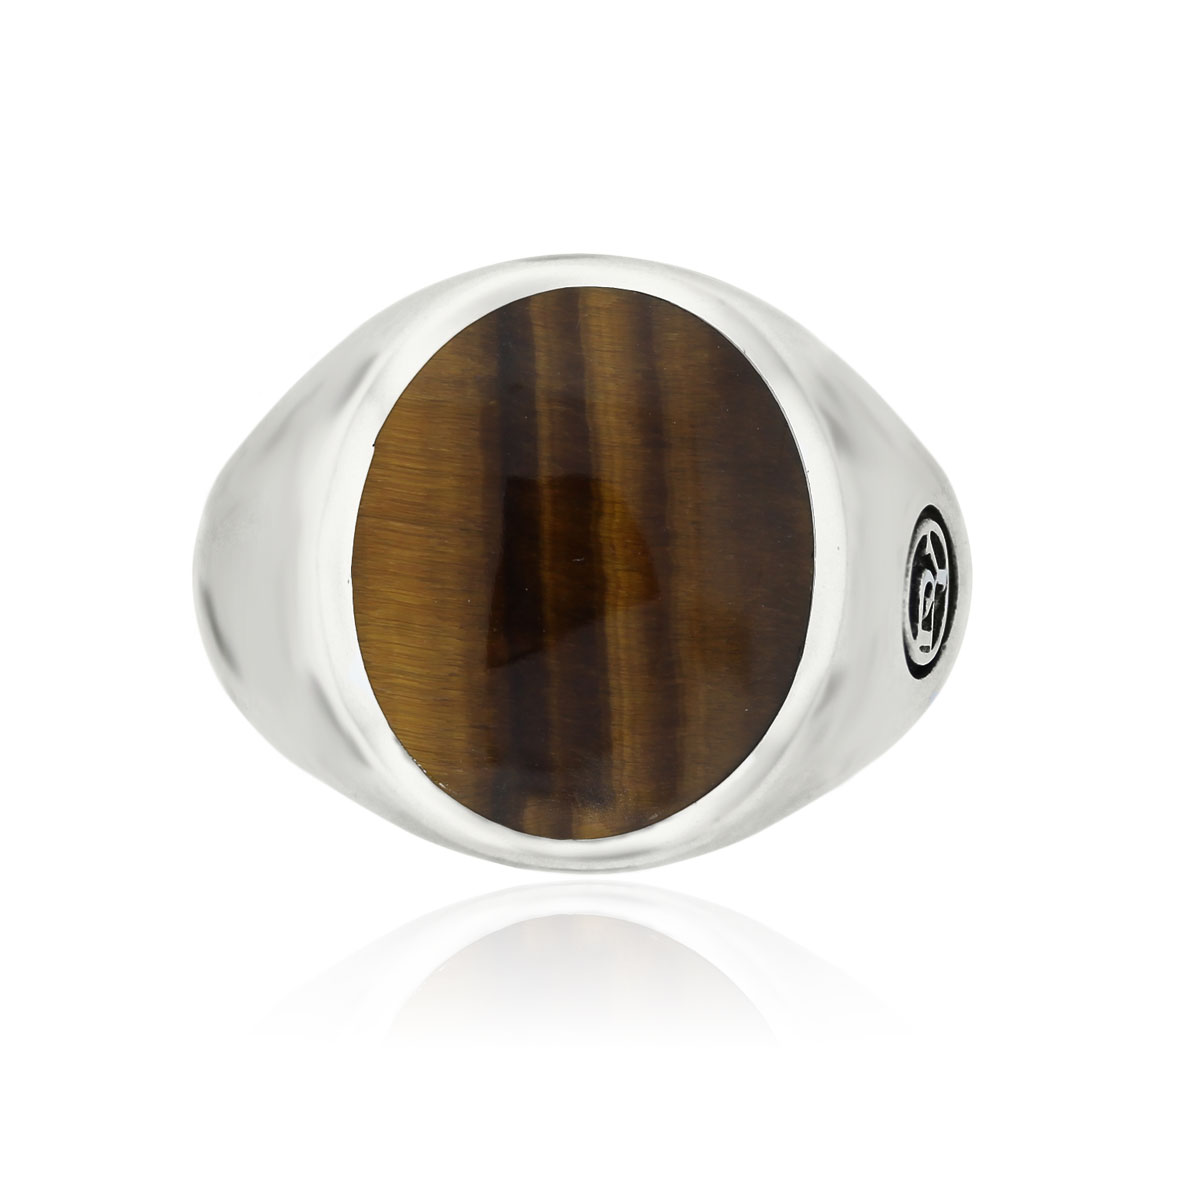 You are viewing this David Yurman Sterling Silver Tiger's Eye Signet Pinky Ring!